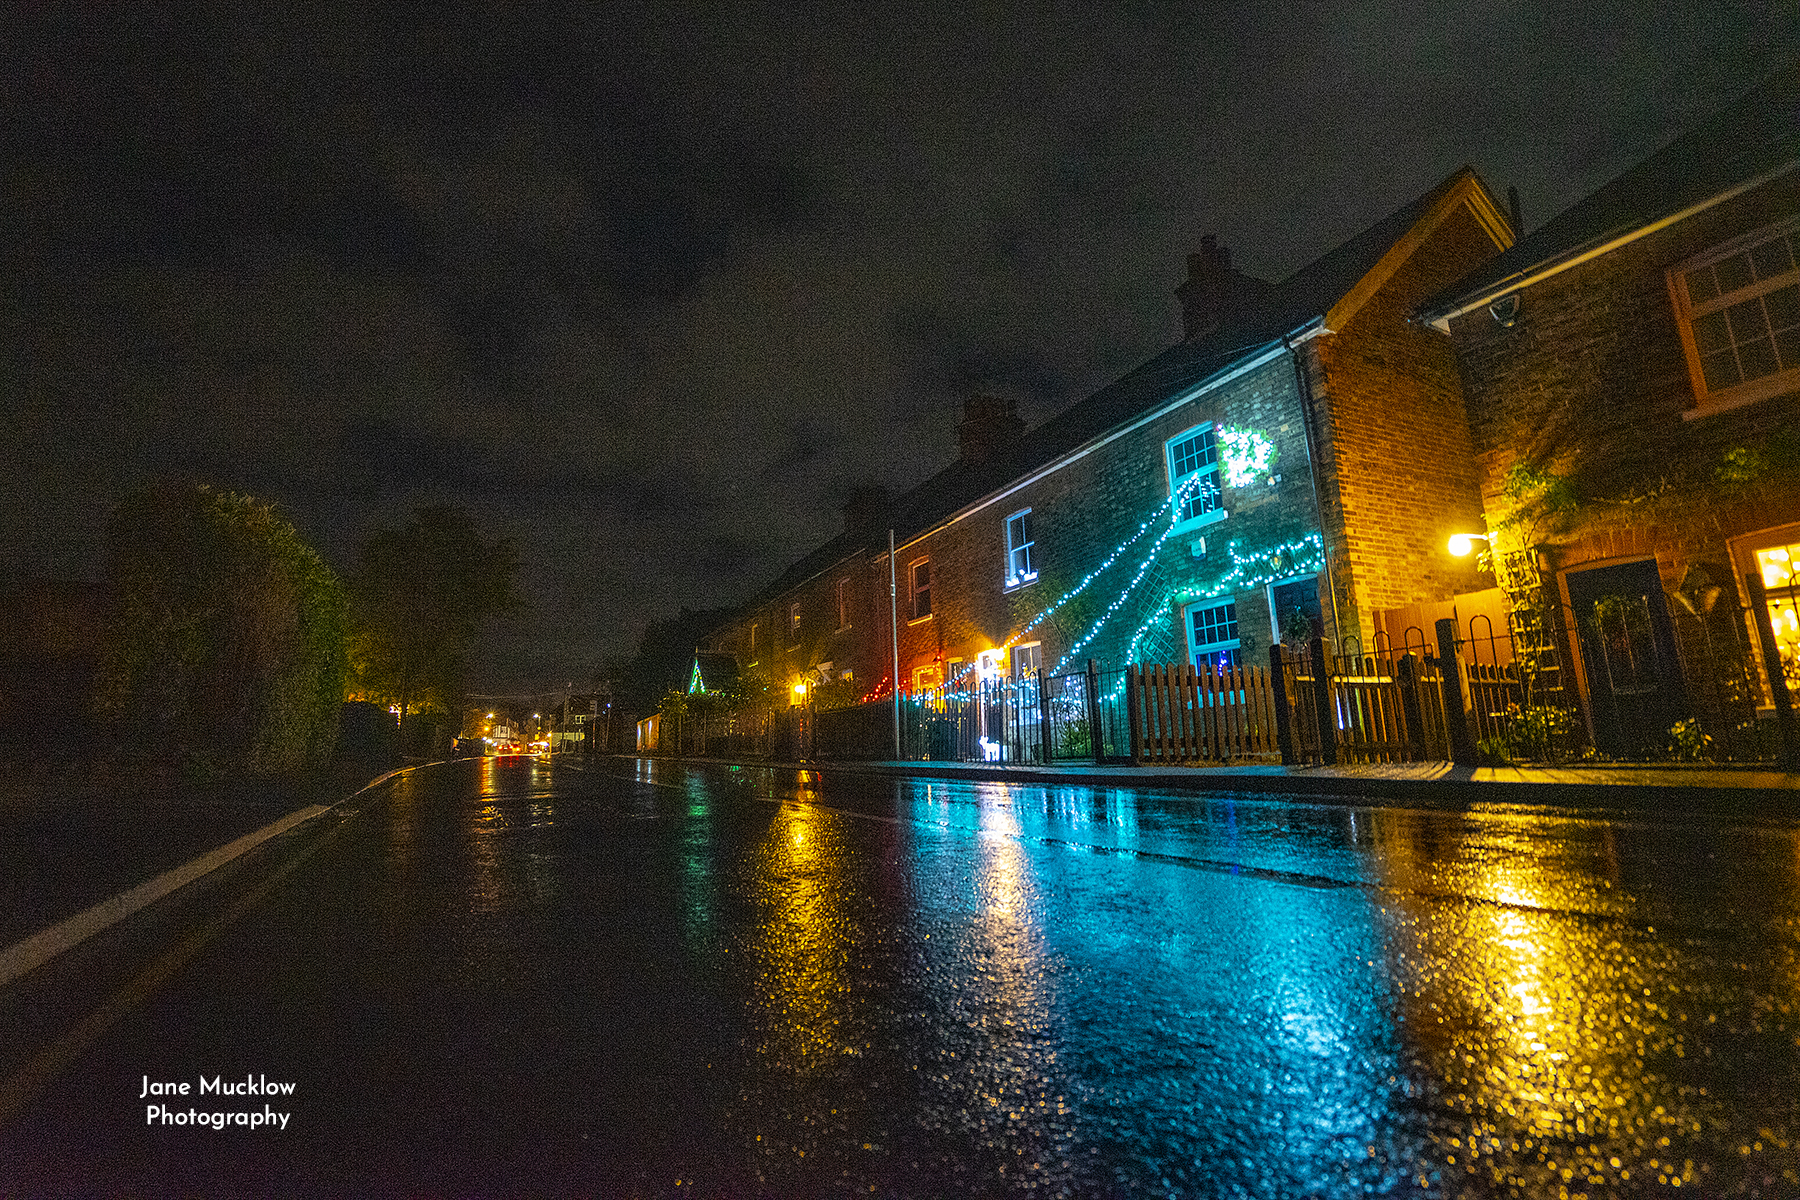 Photo of Otford High Street with Christmas lights, by Jane Mucklow